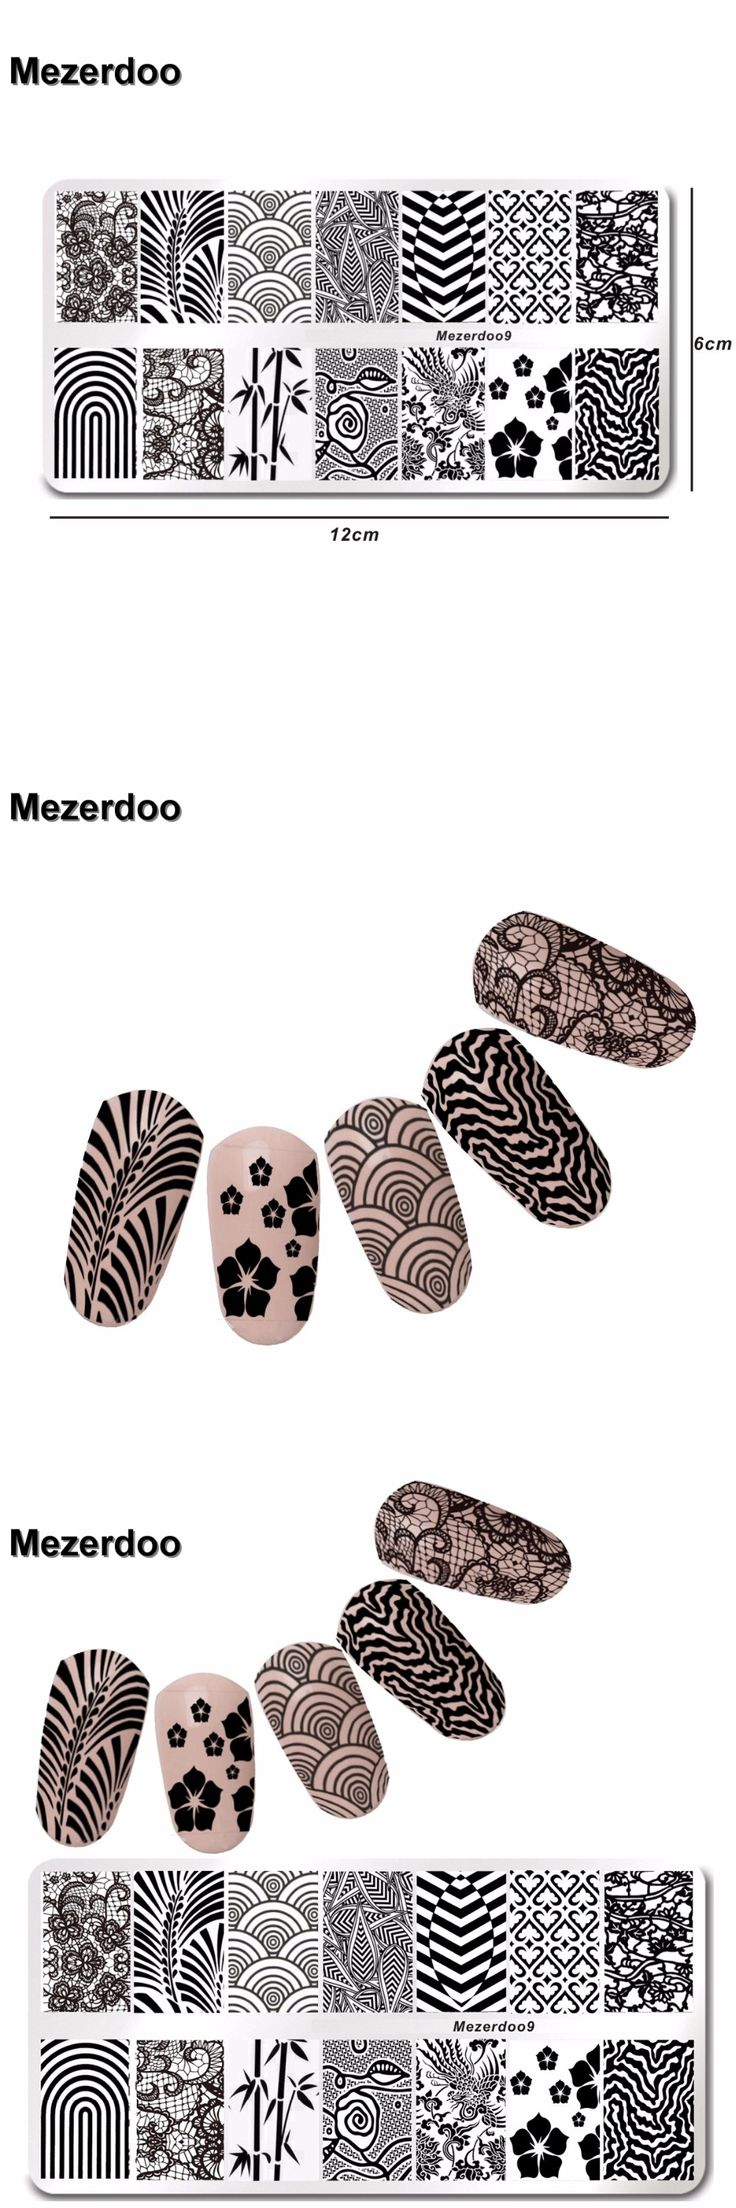 Stainless Steel Nail Stamping Template Lace Geometry Design 6*12cm Manicure Nail Art Image Plate Mezerdoo9